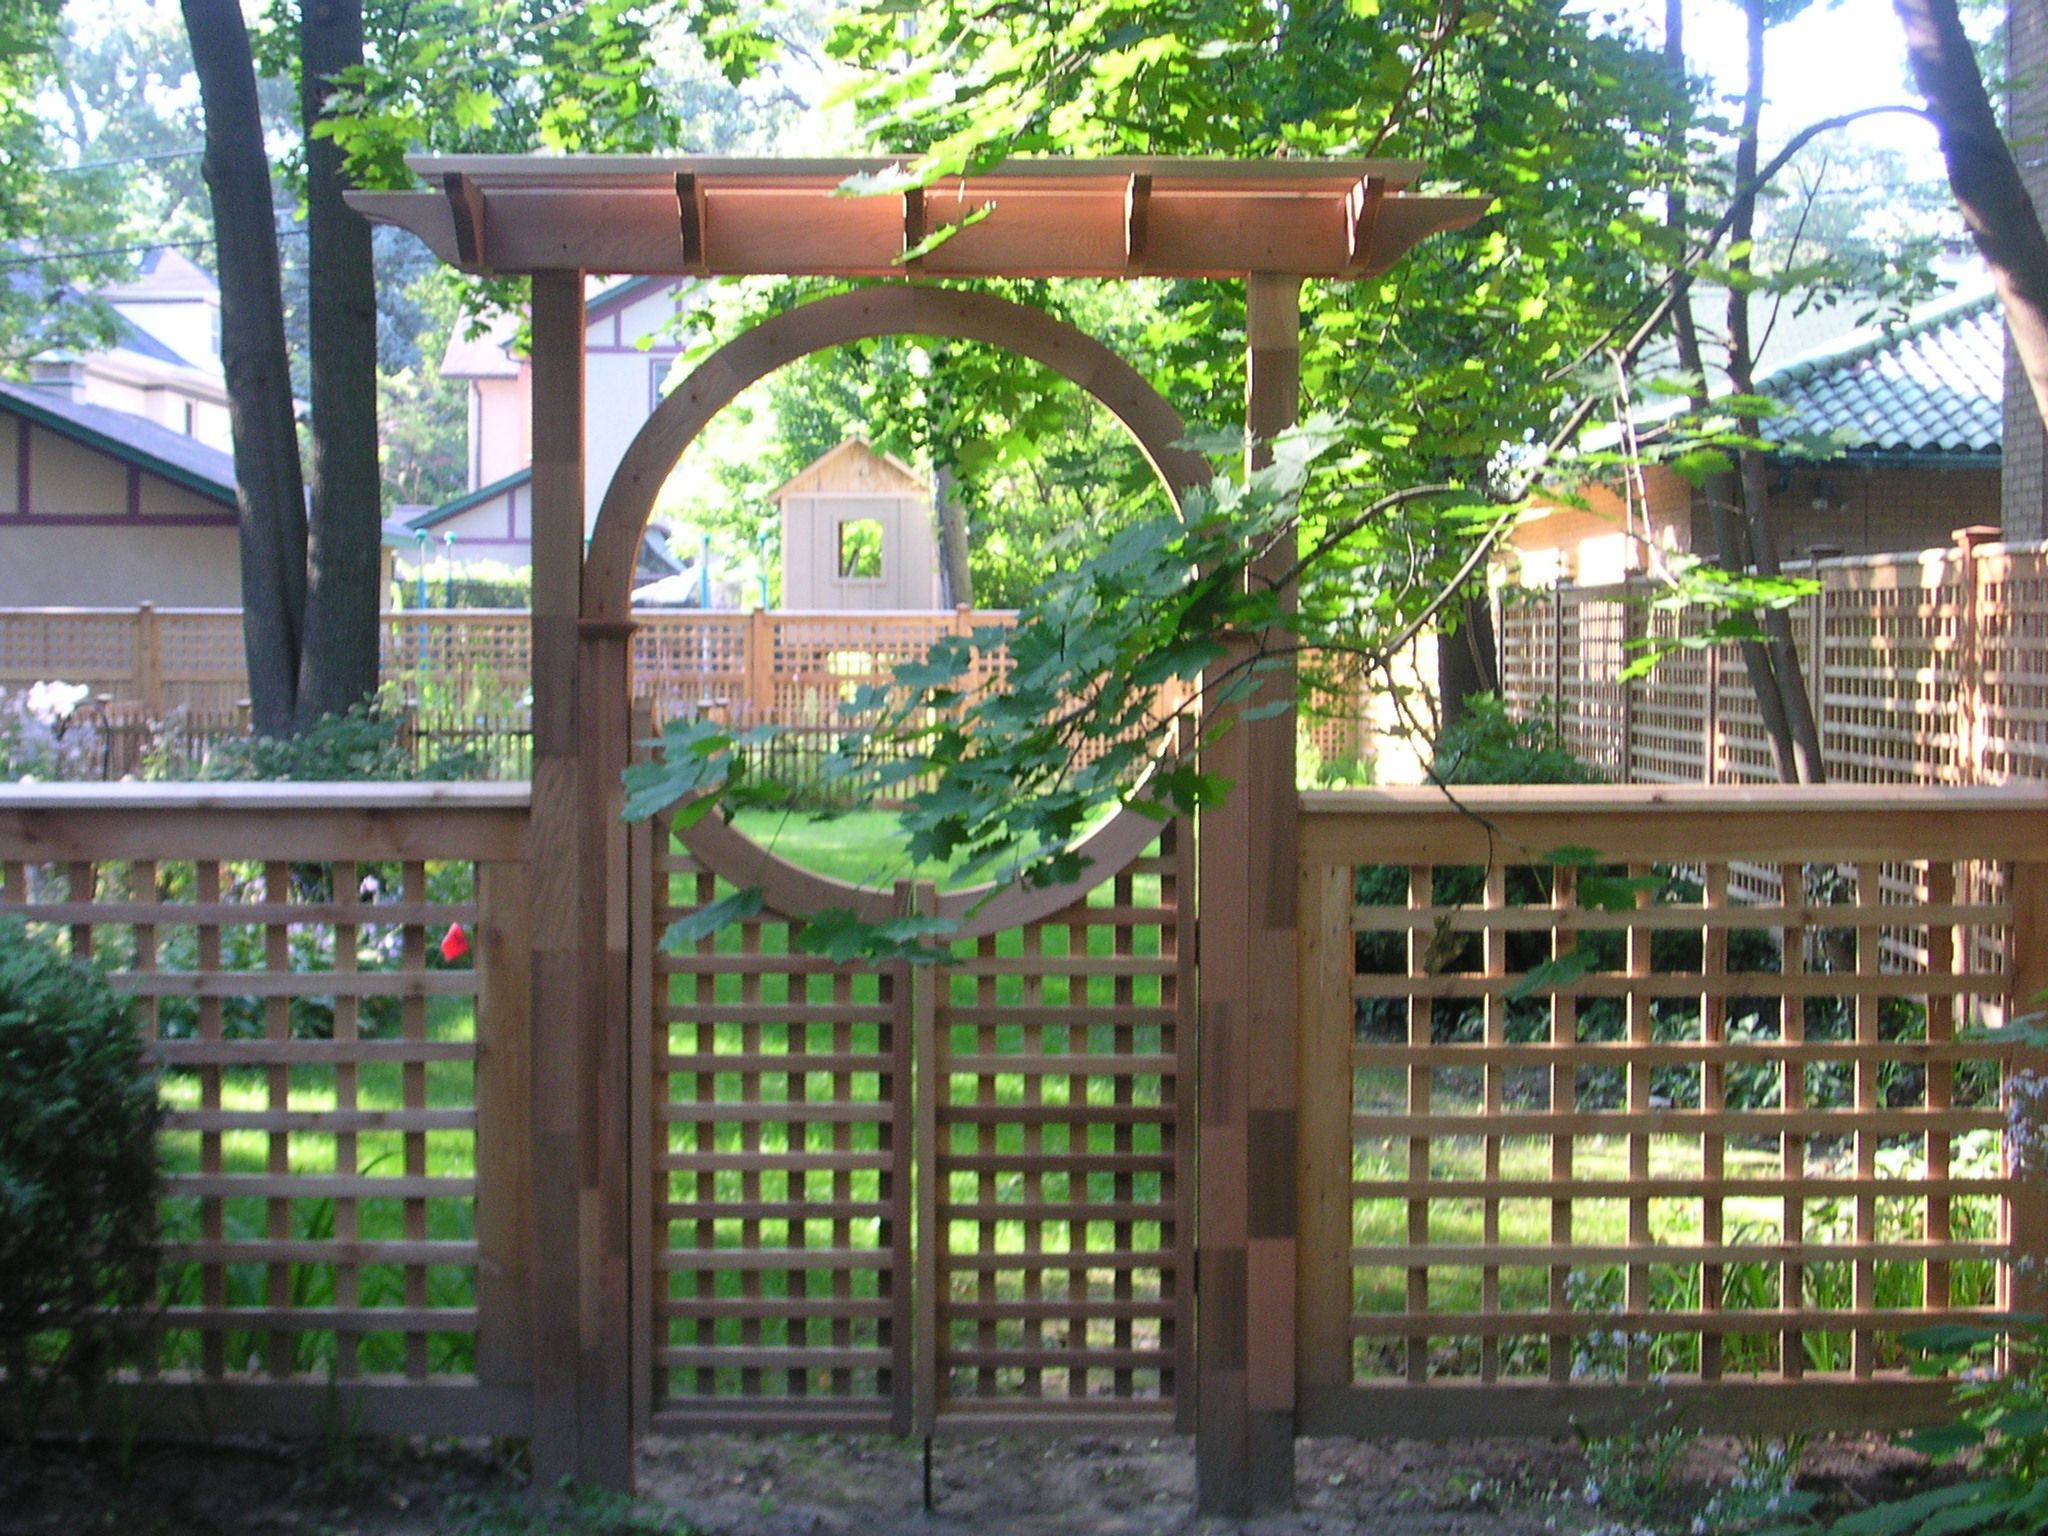 Custom trellis to match pergola landscapes by earth design - Arbors Details Trellis Arbors Seaside Pergola High Tide Gates